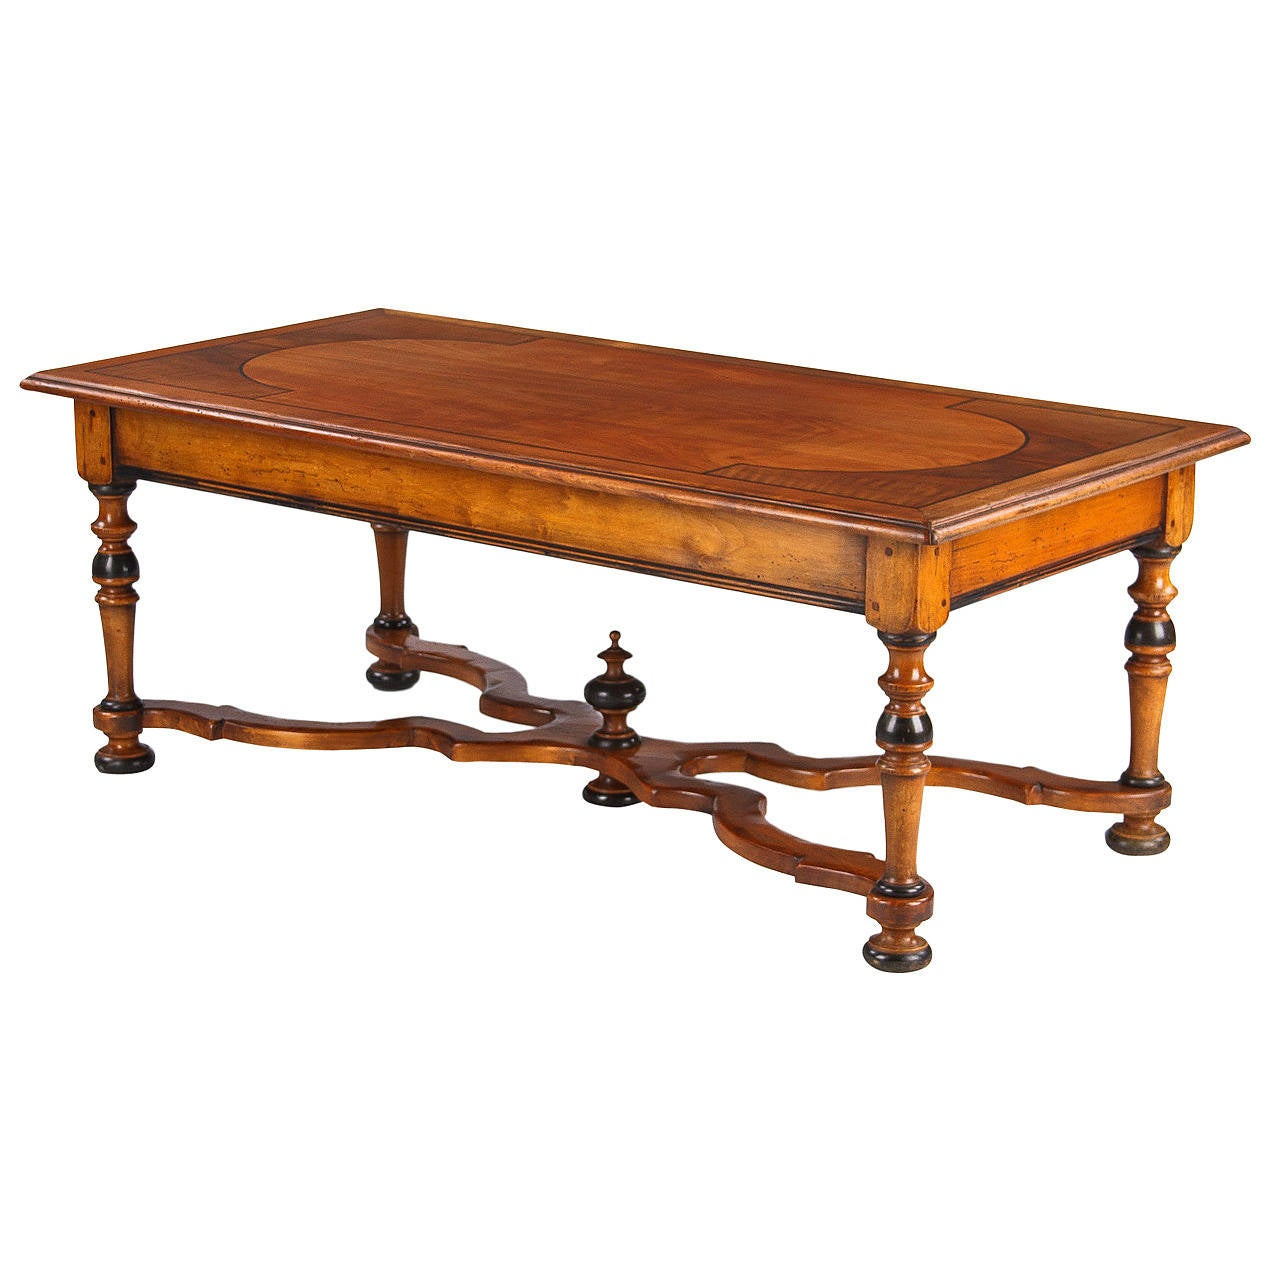 French Louis Xiv Style Cherrywood Coffee Table Early 1900s For Sale At 1stdibs